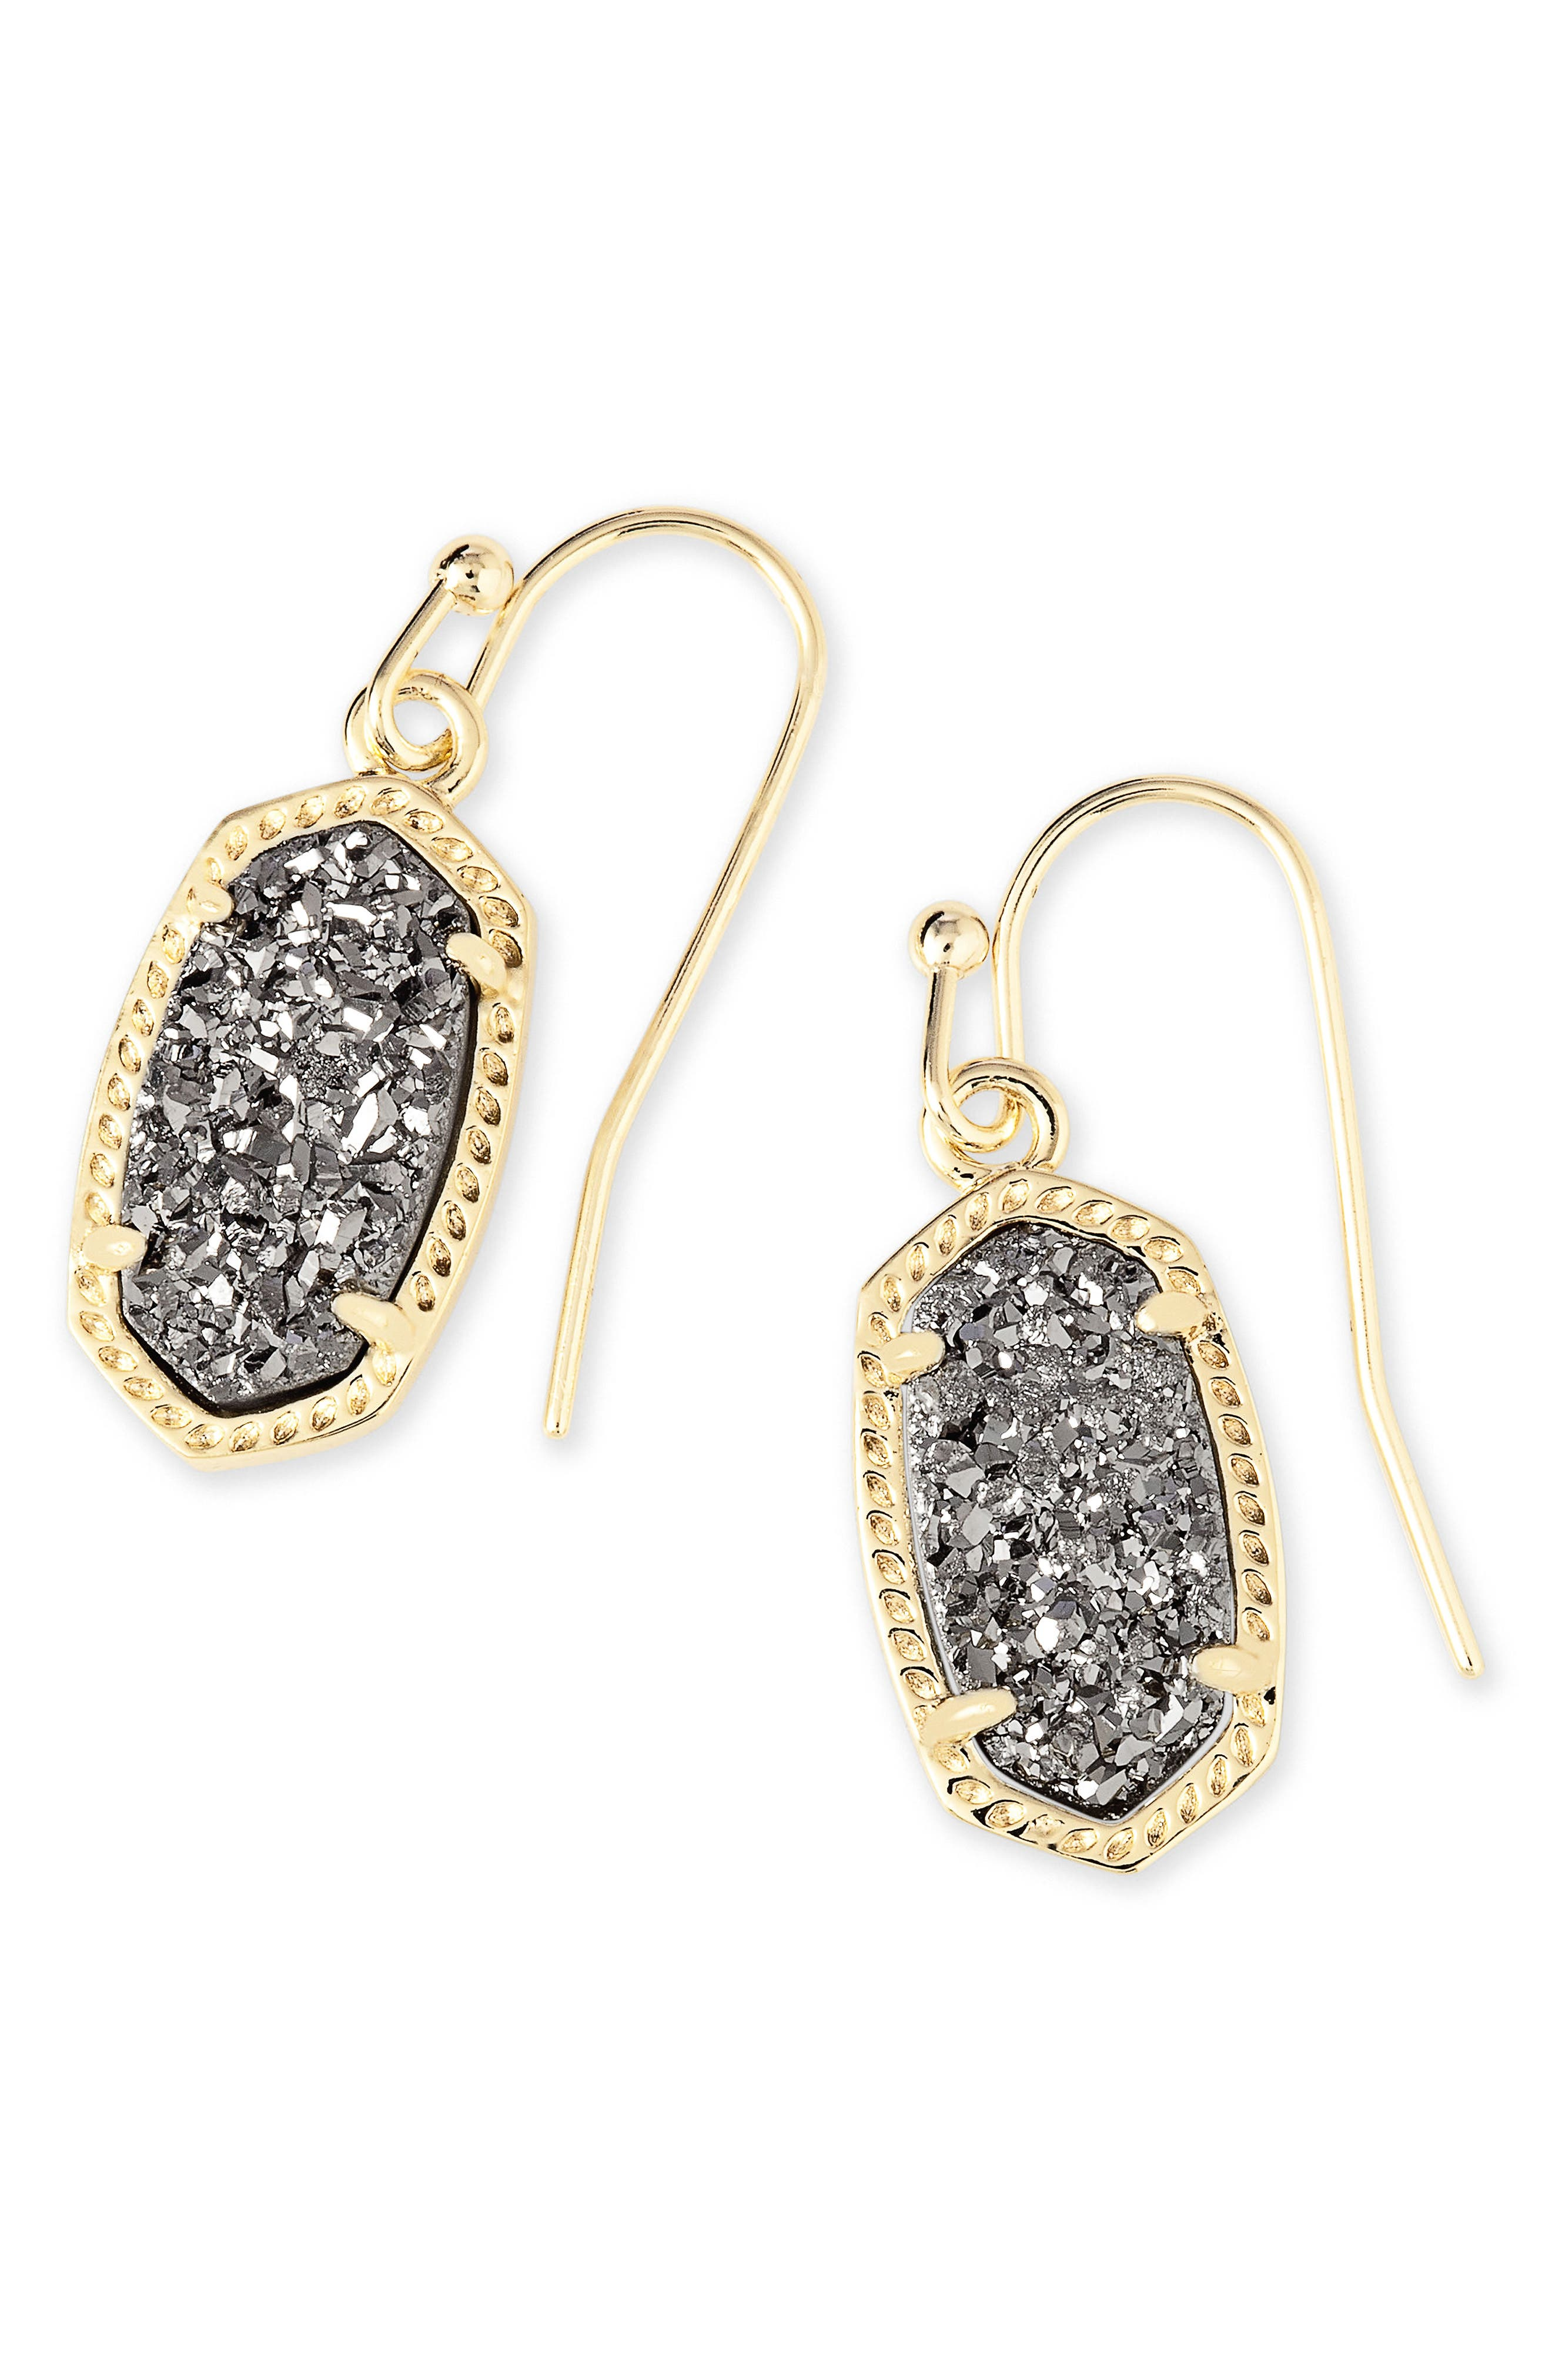 Lee Small Drop Earrings,                             Main thumbnail 1, color,                             Platinum Drusy/ Gold